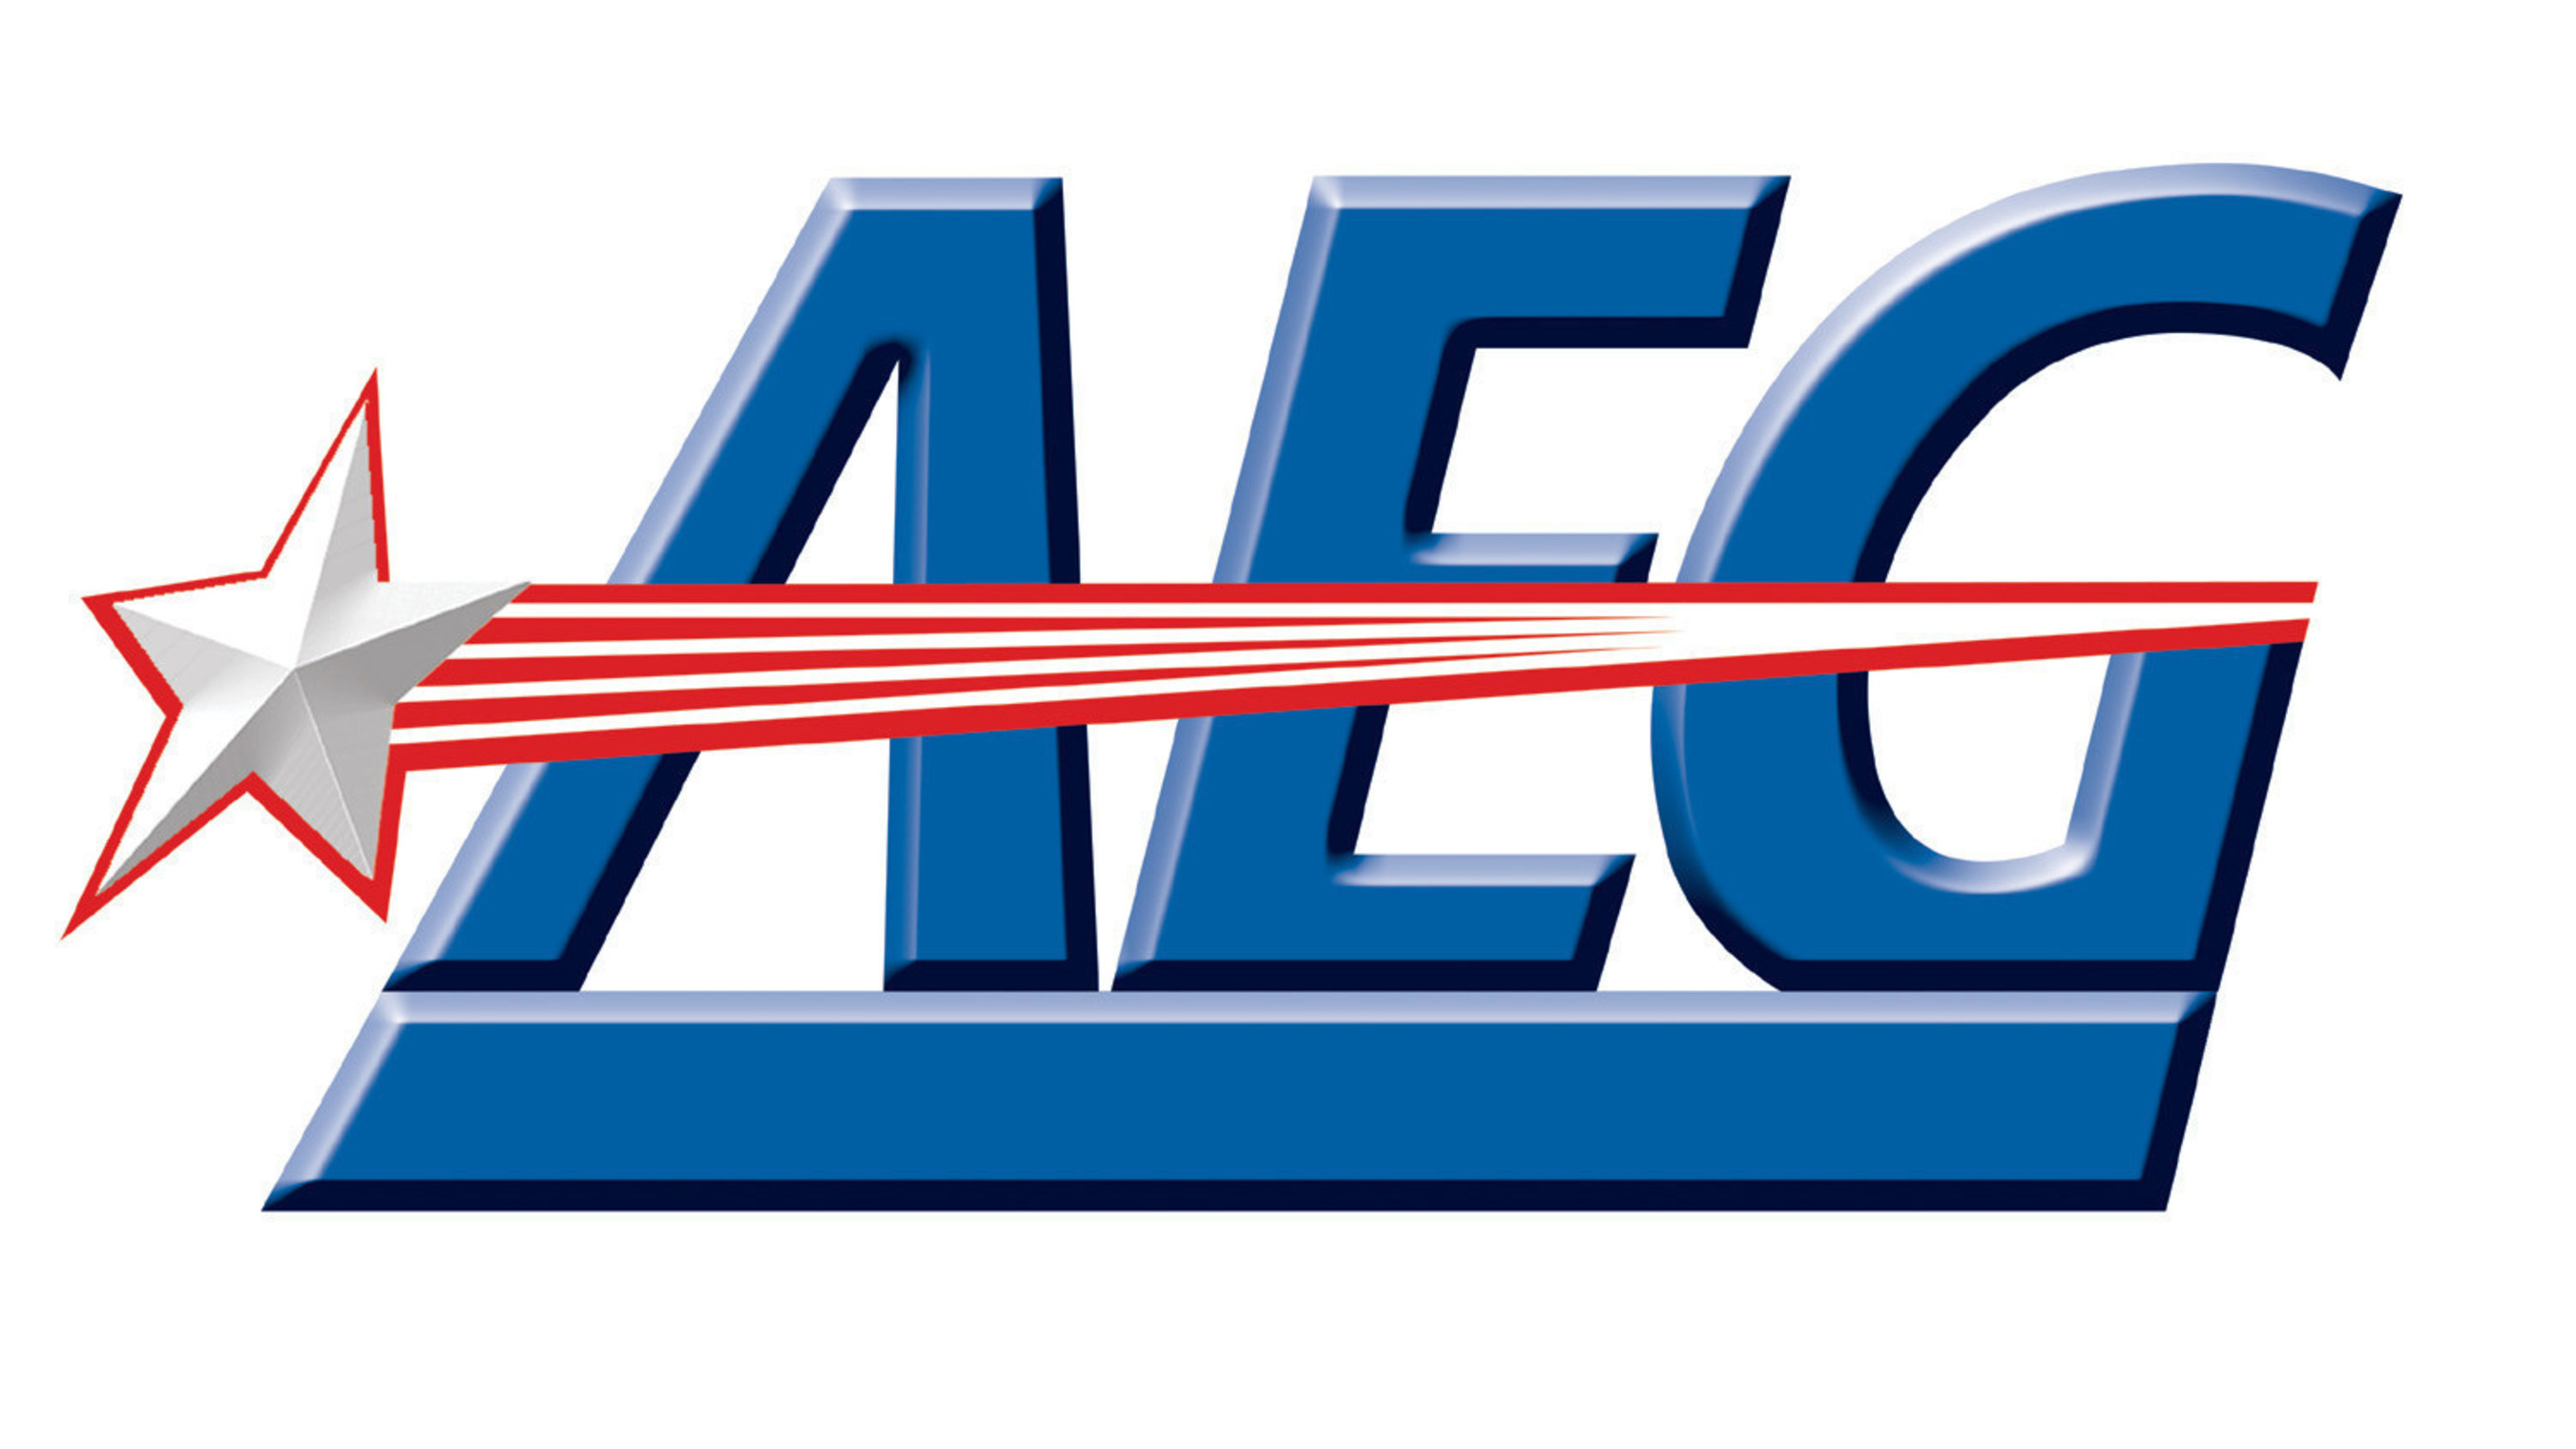 AEG Grows Relationship With Archaio In Expanded Partnership Agreement